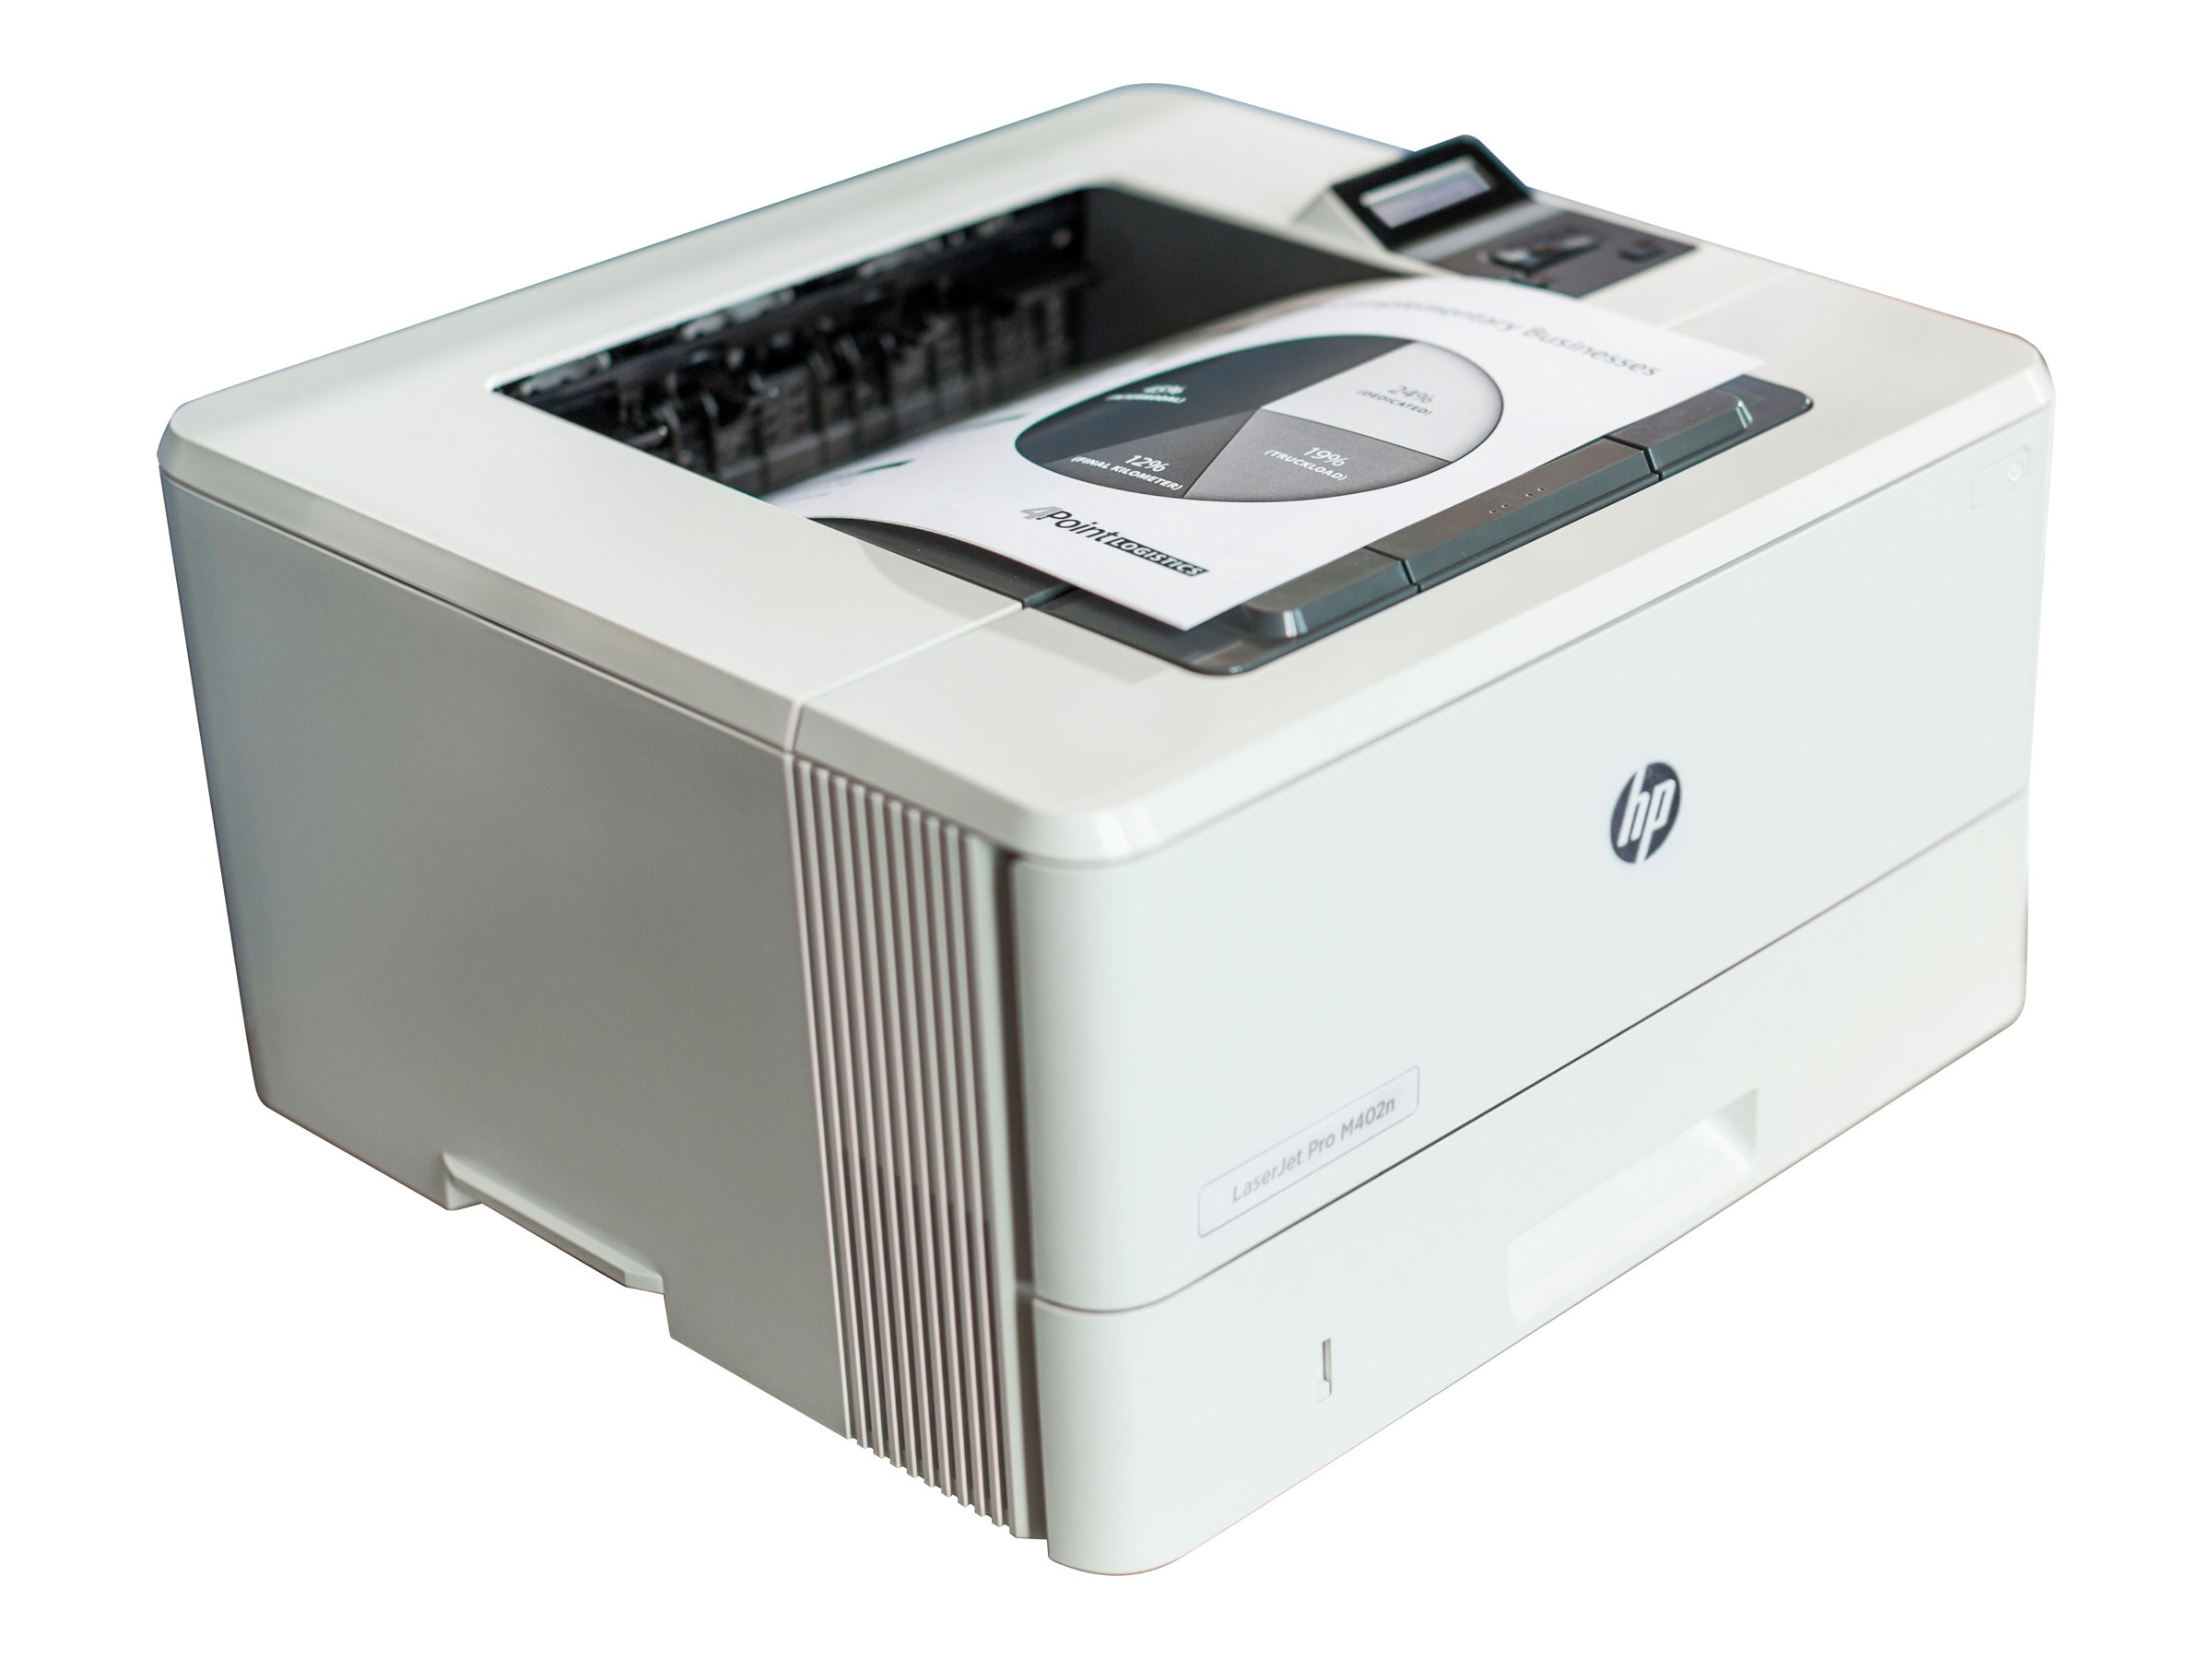 HP LaserJet Pro 400 M402n Printer (replaces M401n), C5F93A#BGJ, 30006358, Printers - Laser & LED (monochrome)